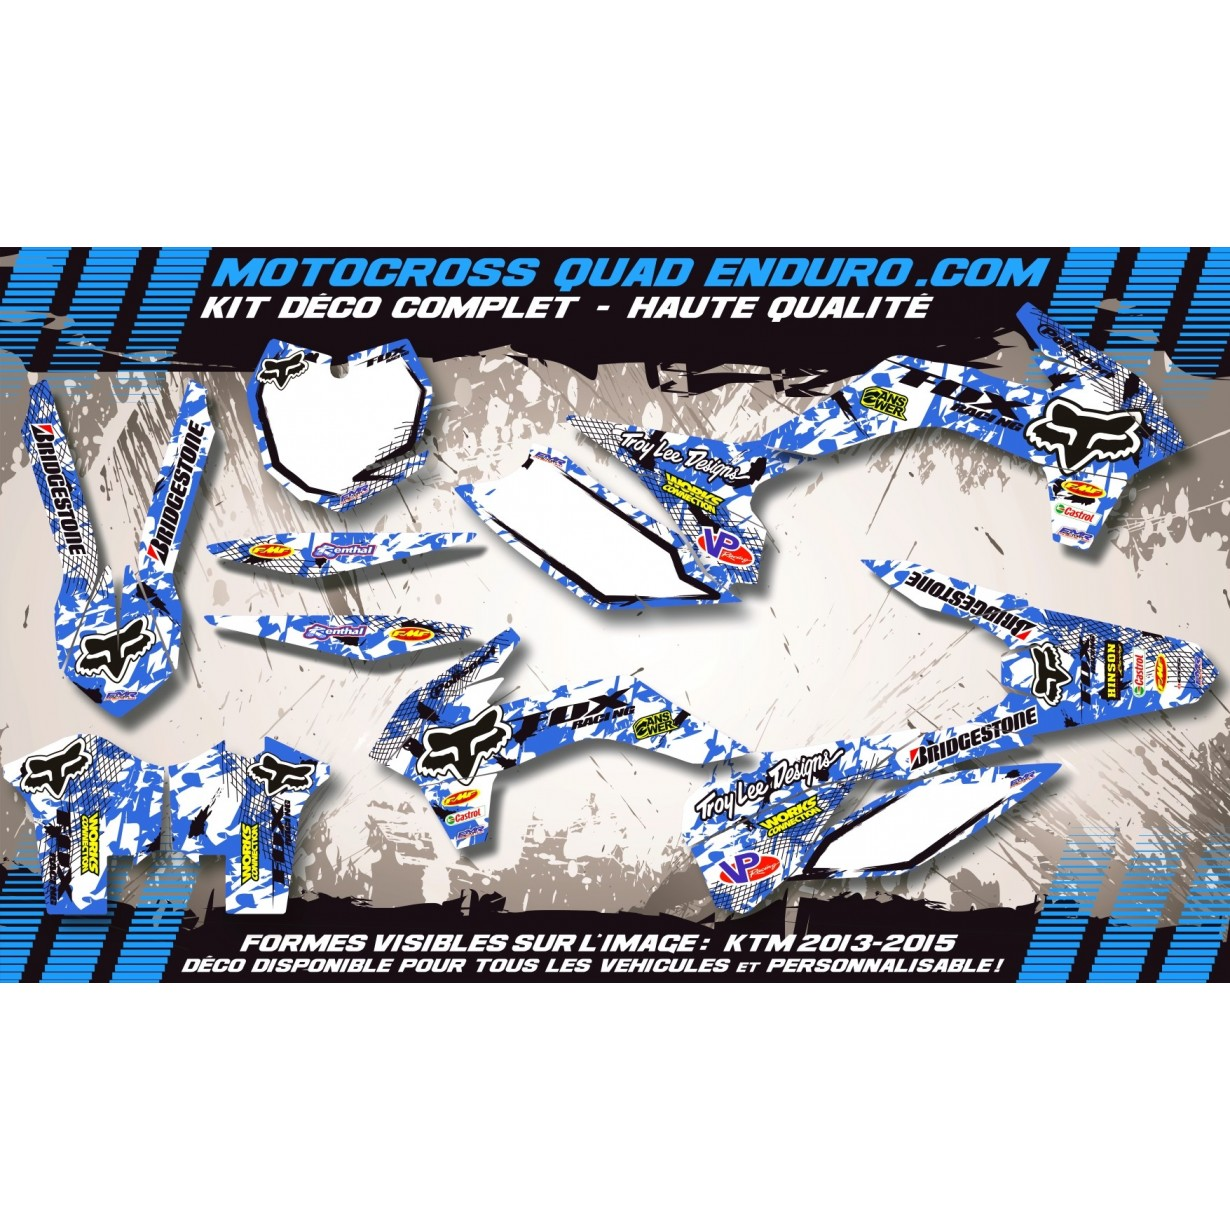 KIT DÉCO Perso TE 400 410 610 99-02 FOX MA9E